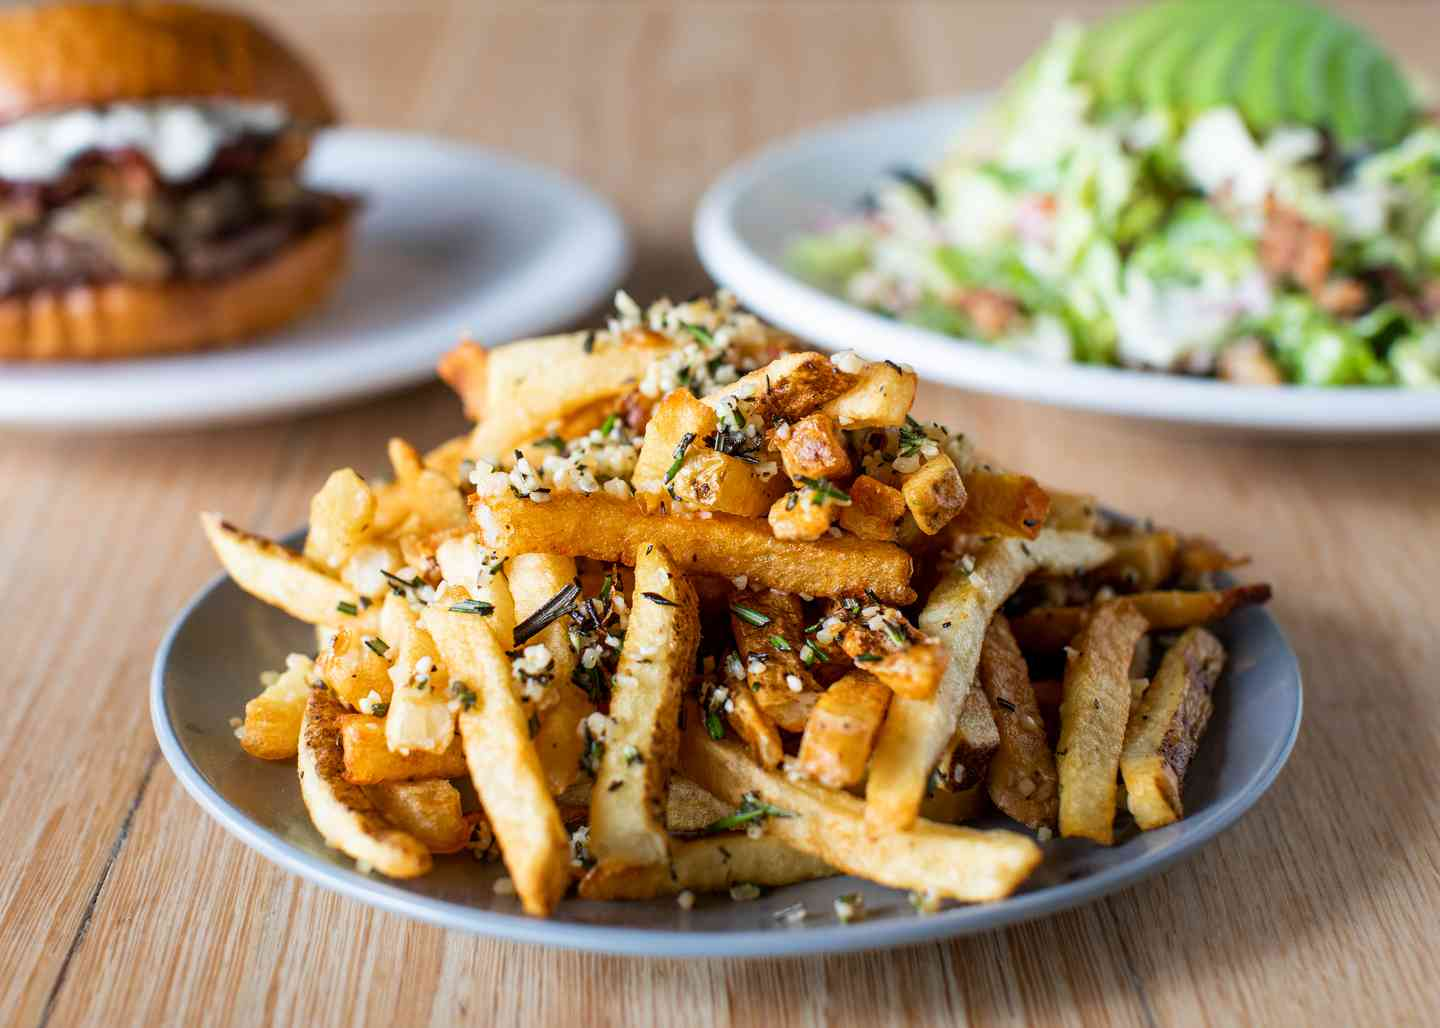 Garlic & Rosemary Fries